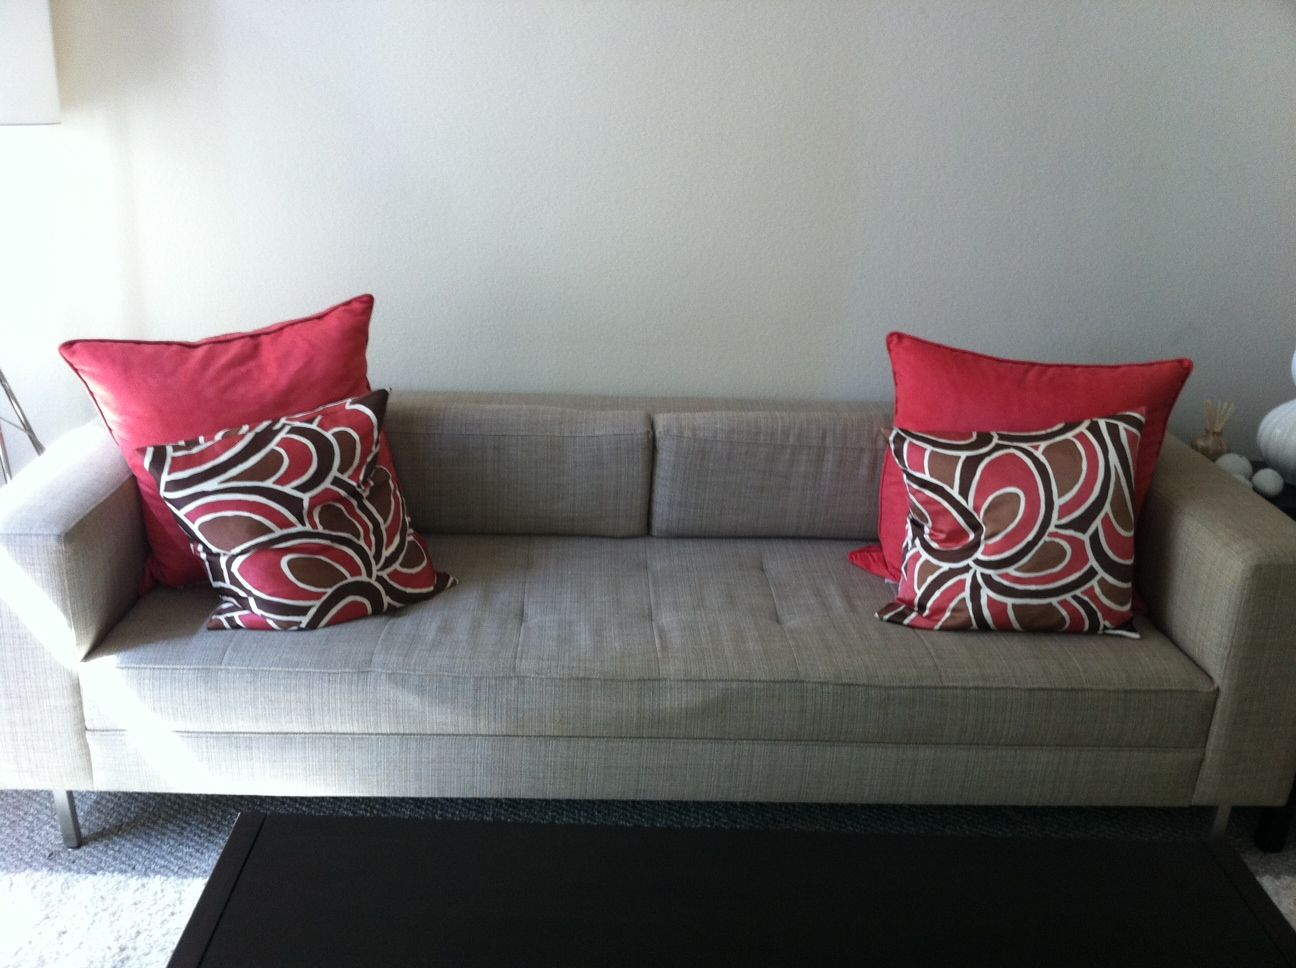 Throw Pillows For Couch Pinterest : 301 Moved Permanently